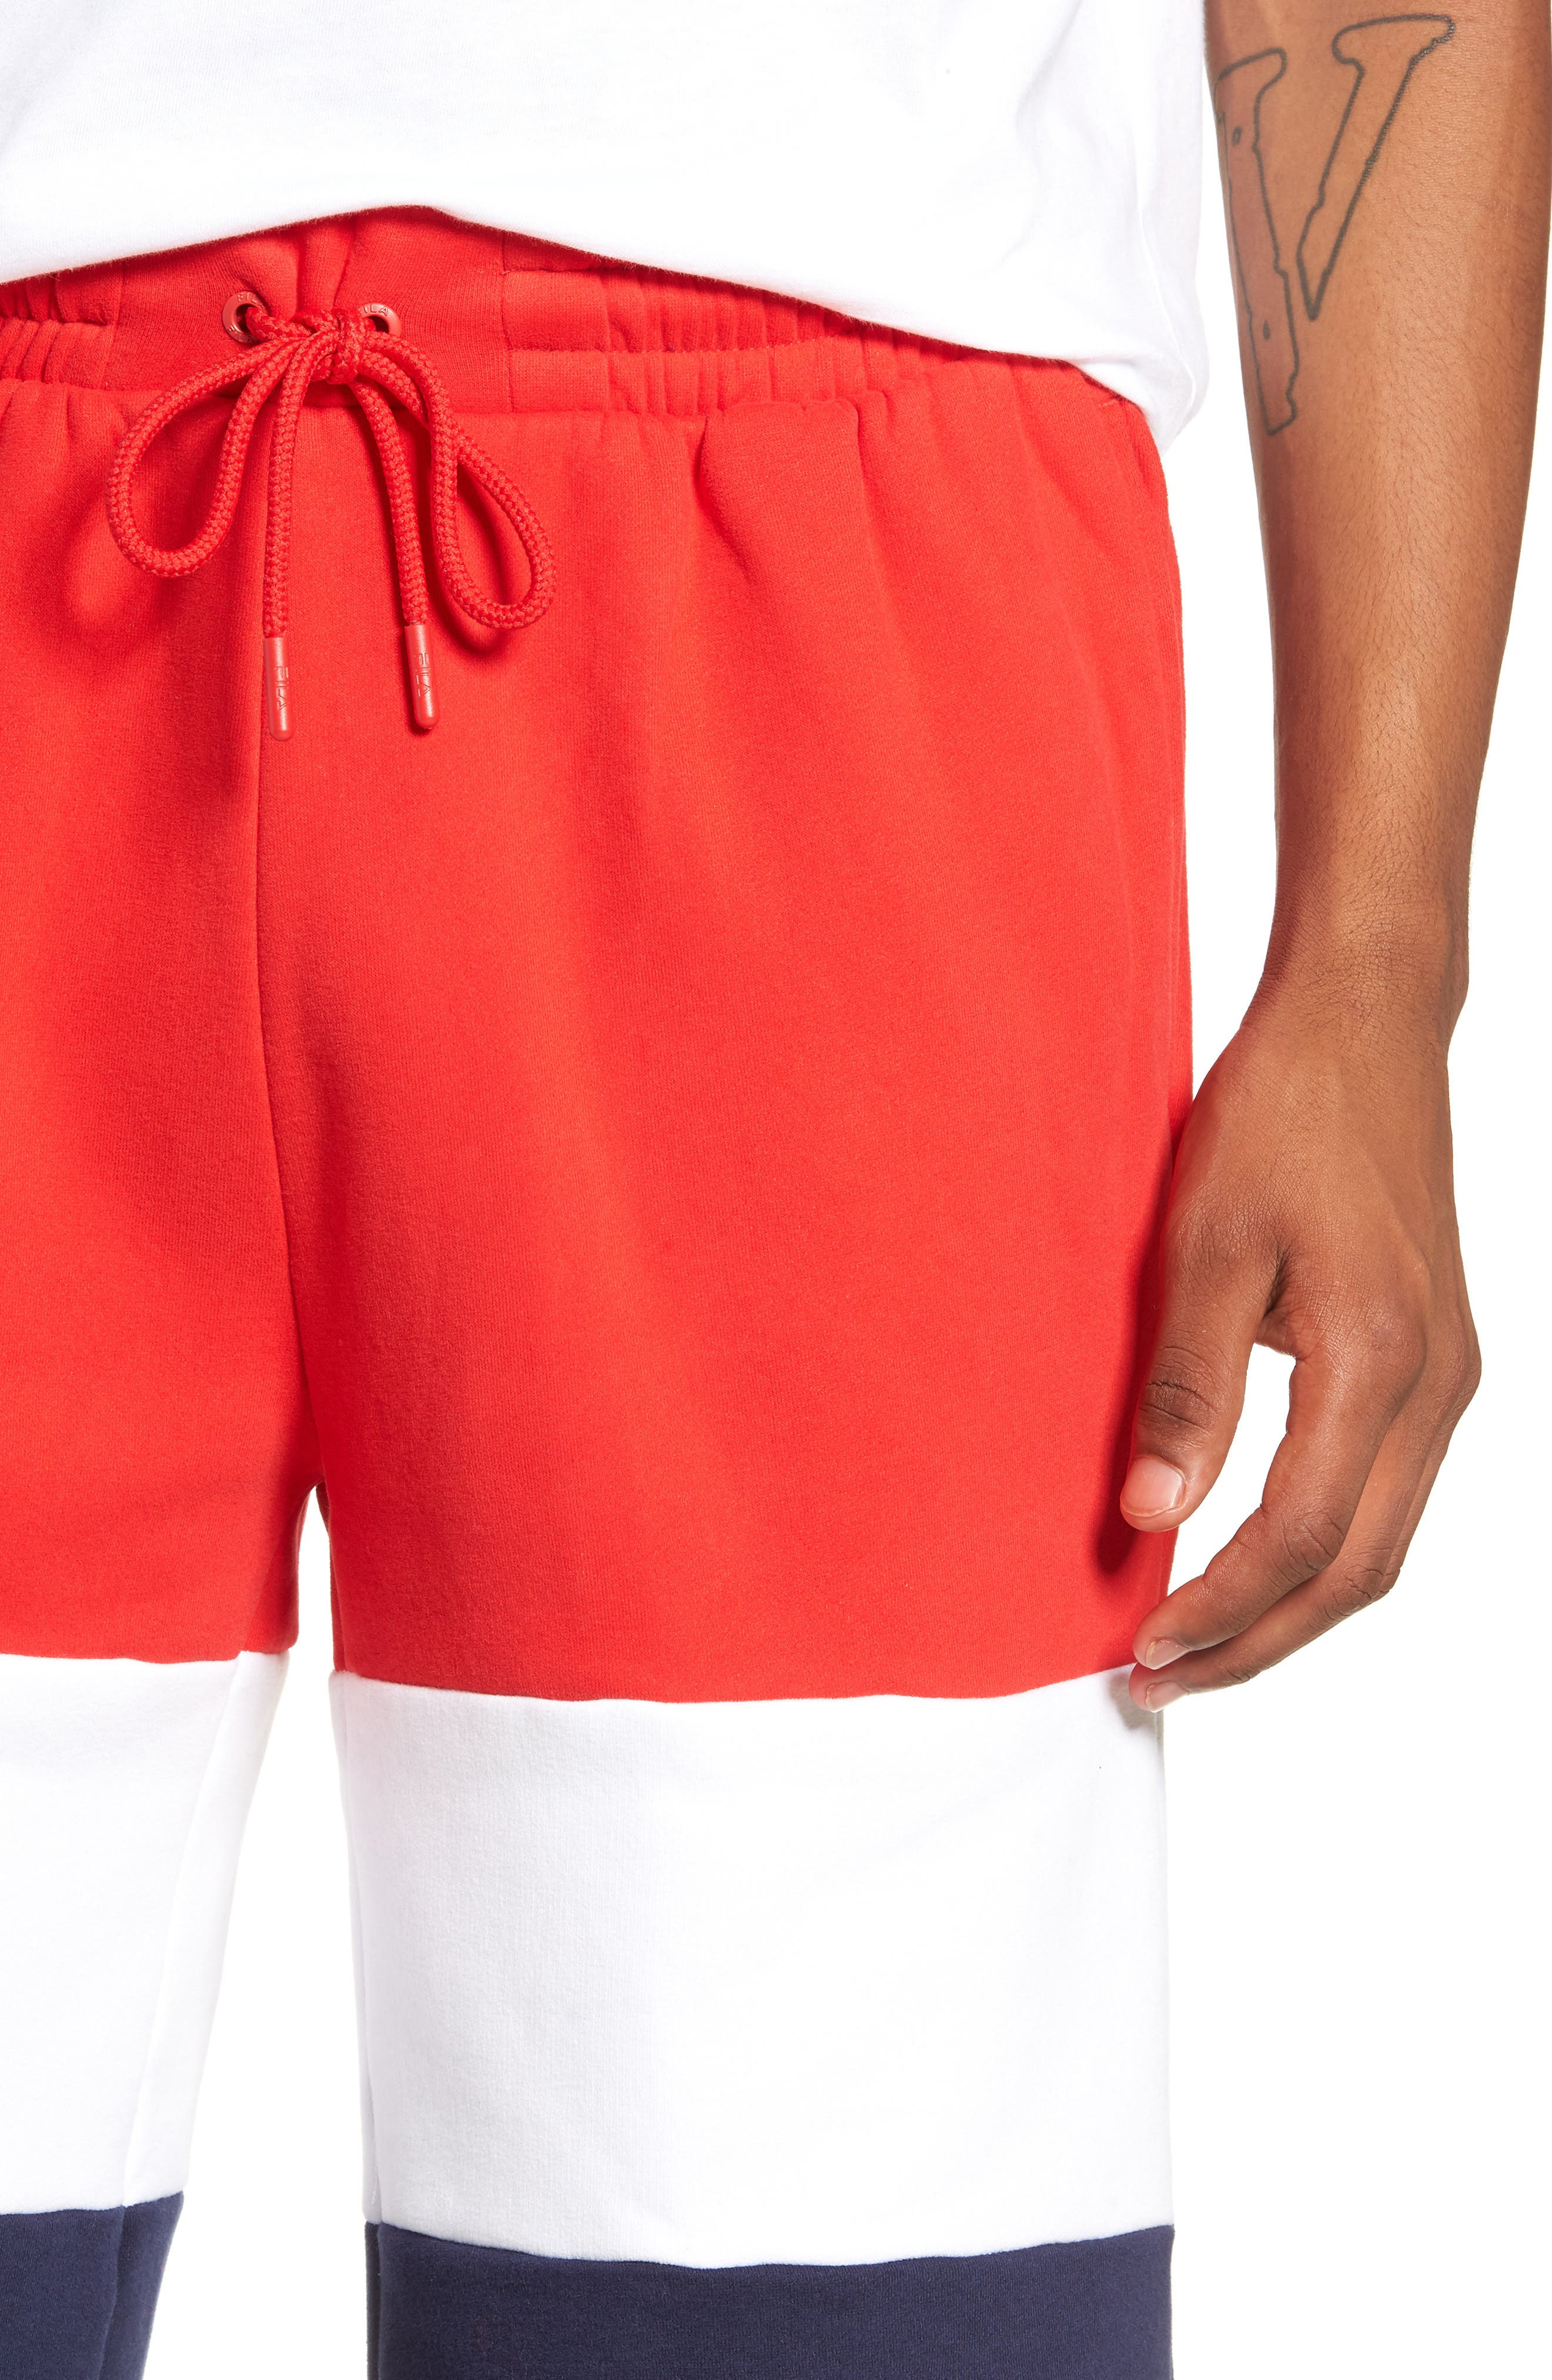 Alanzo Shorts,                             Alternate thumbnail 4, color,                             CHINESE RED/ WHITE/ NAVY